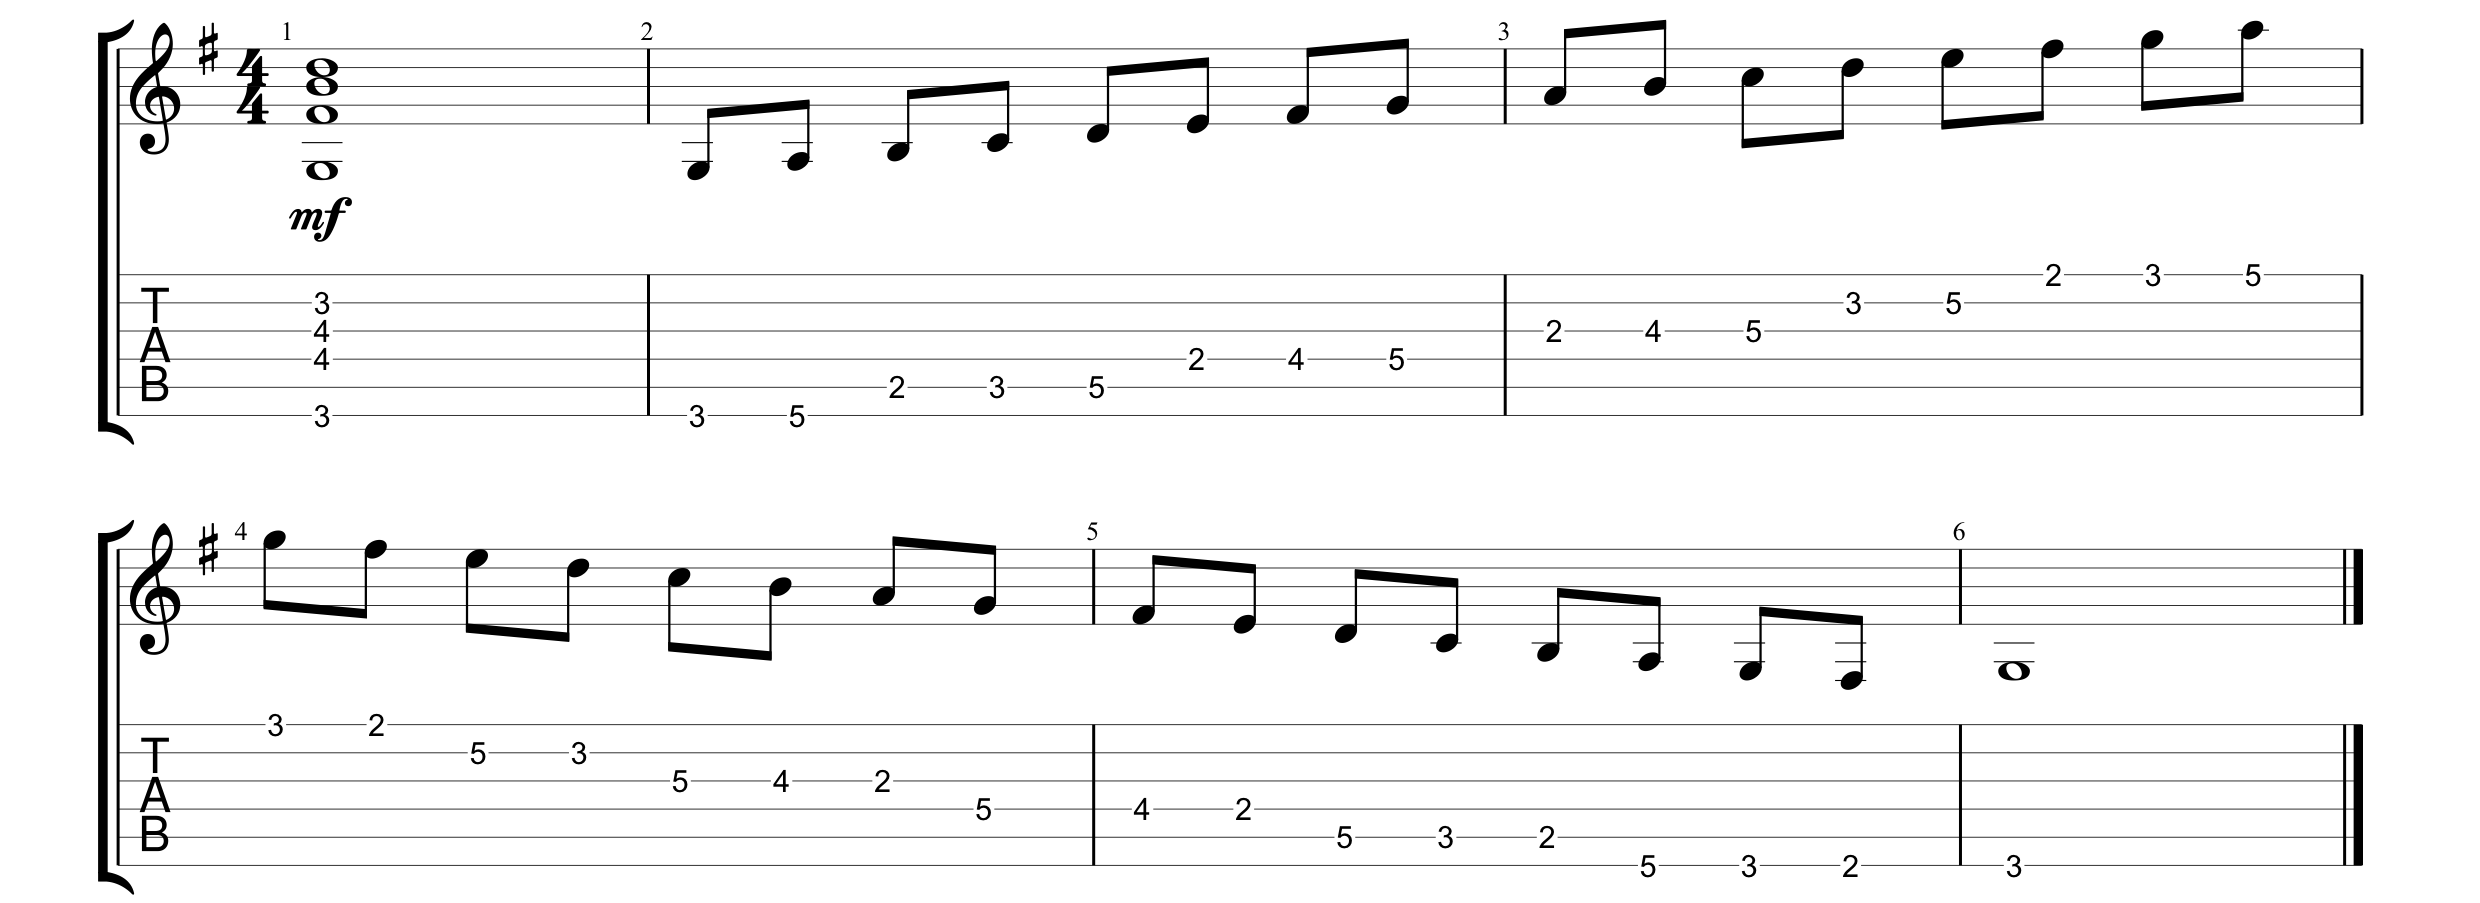 Major Scale E Shape G.png